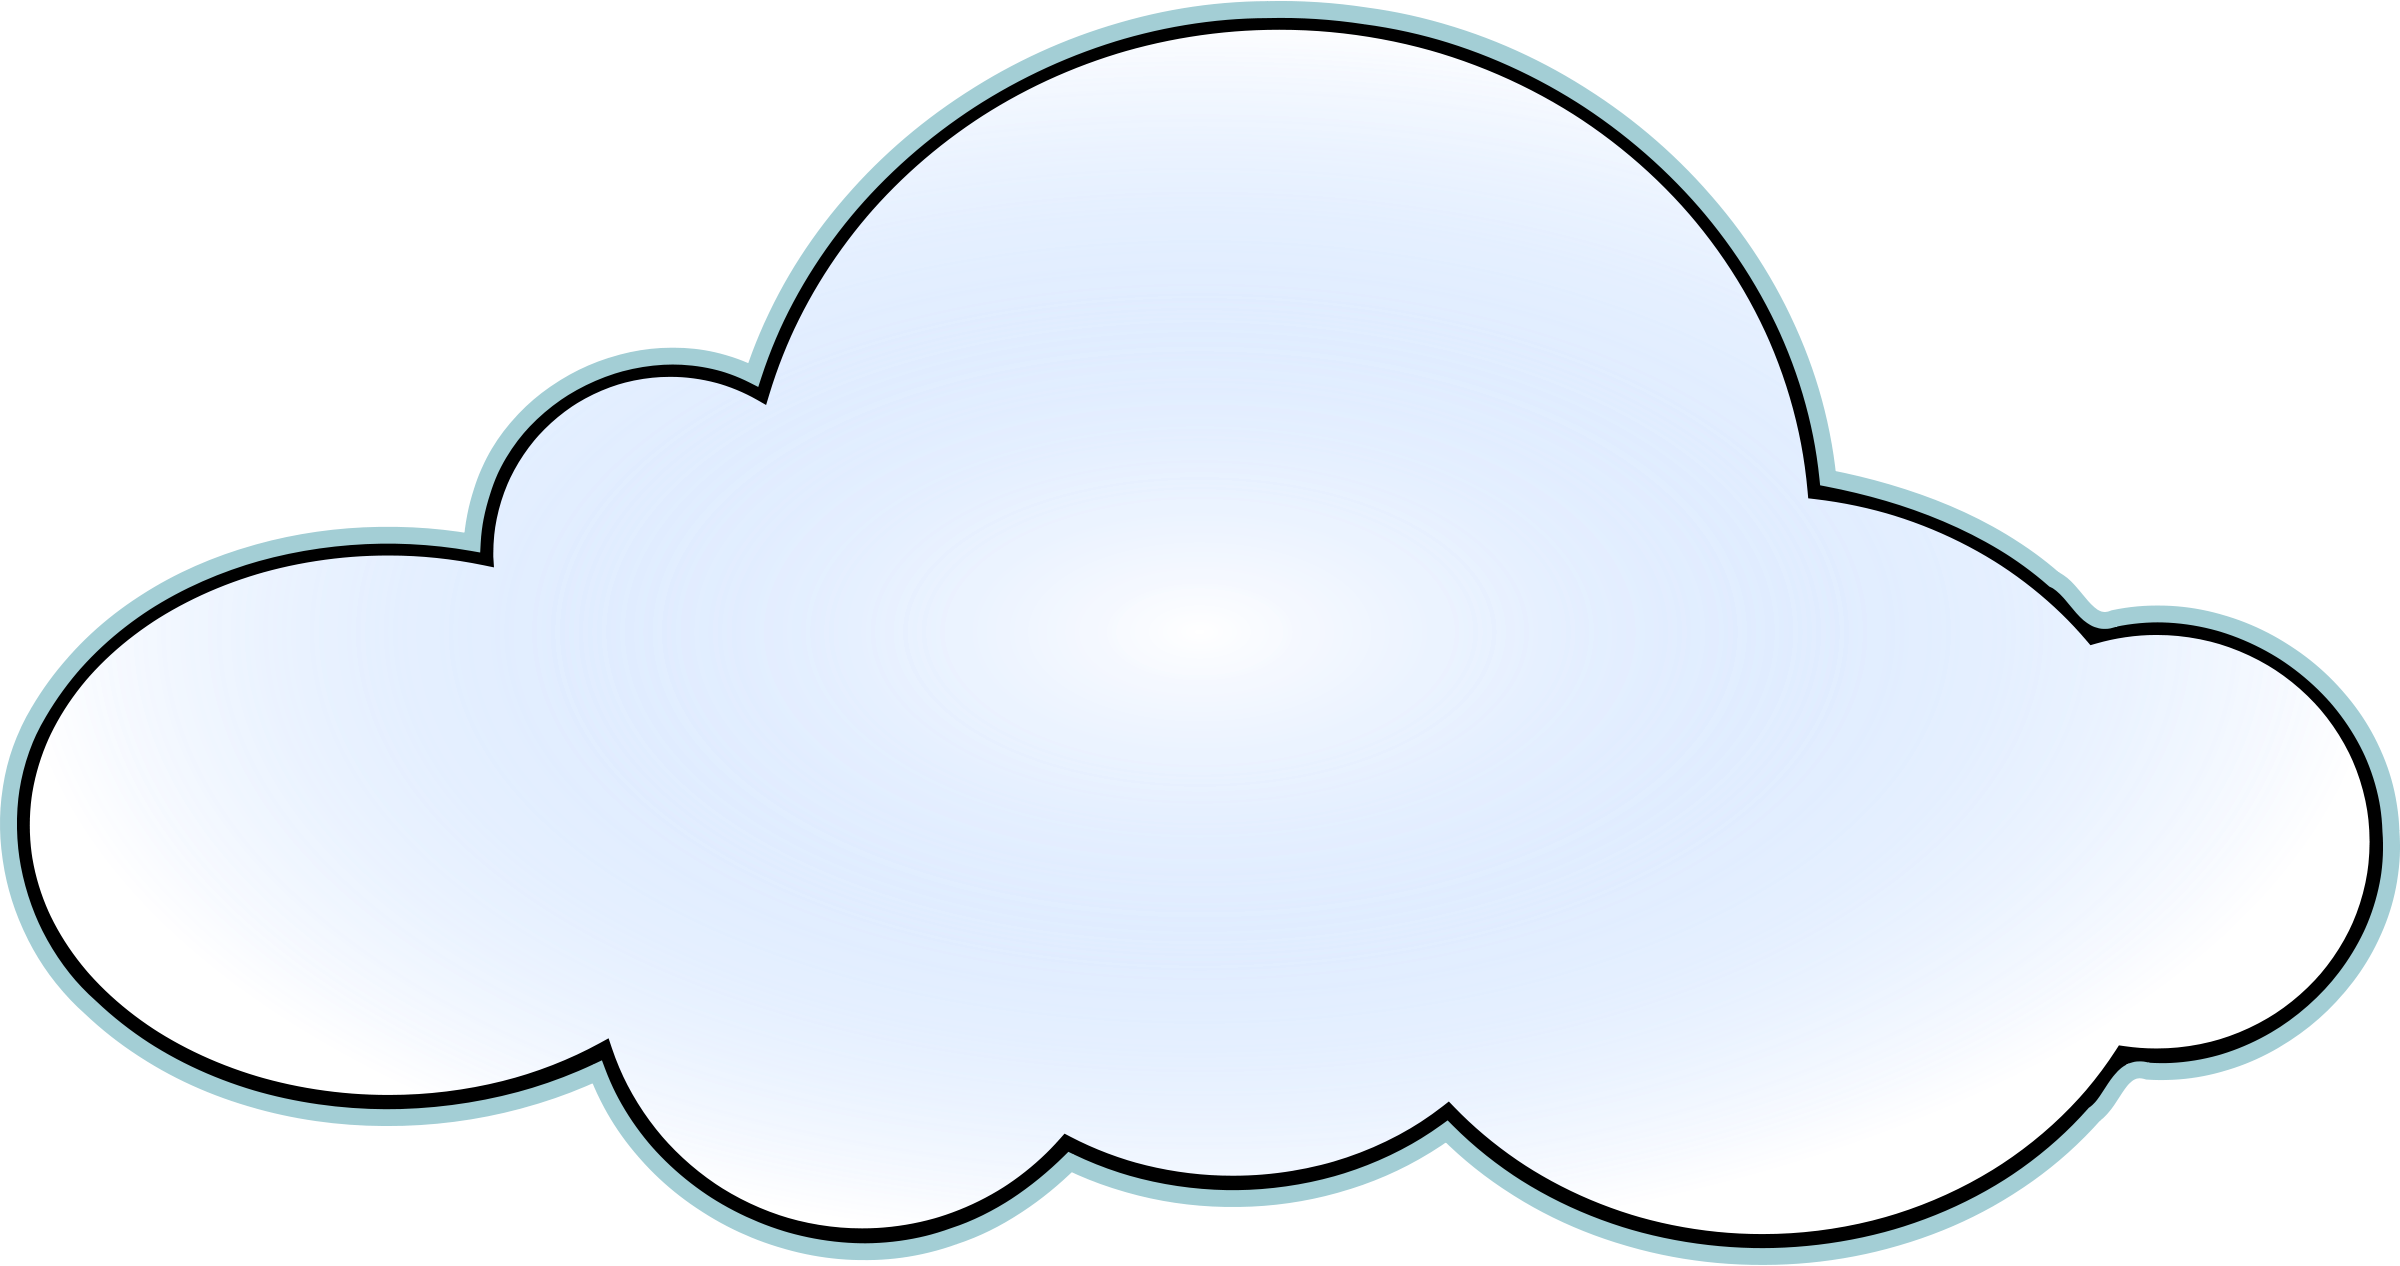 Cloud clipart free images 2